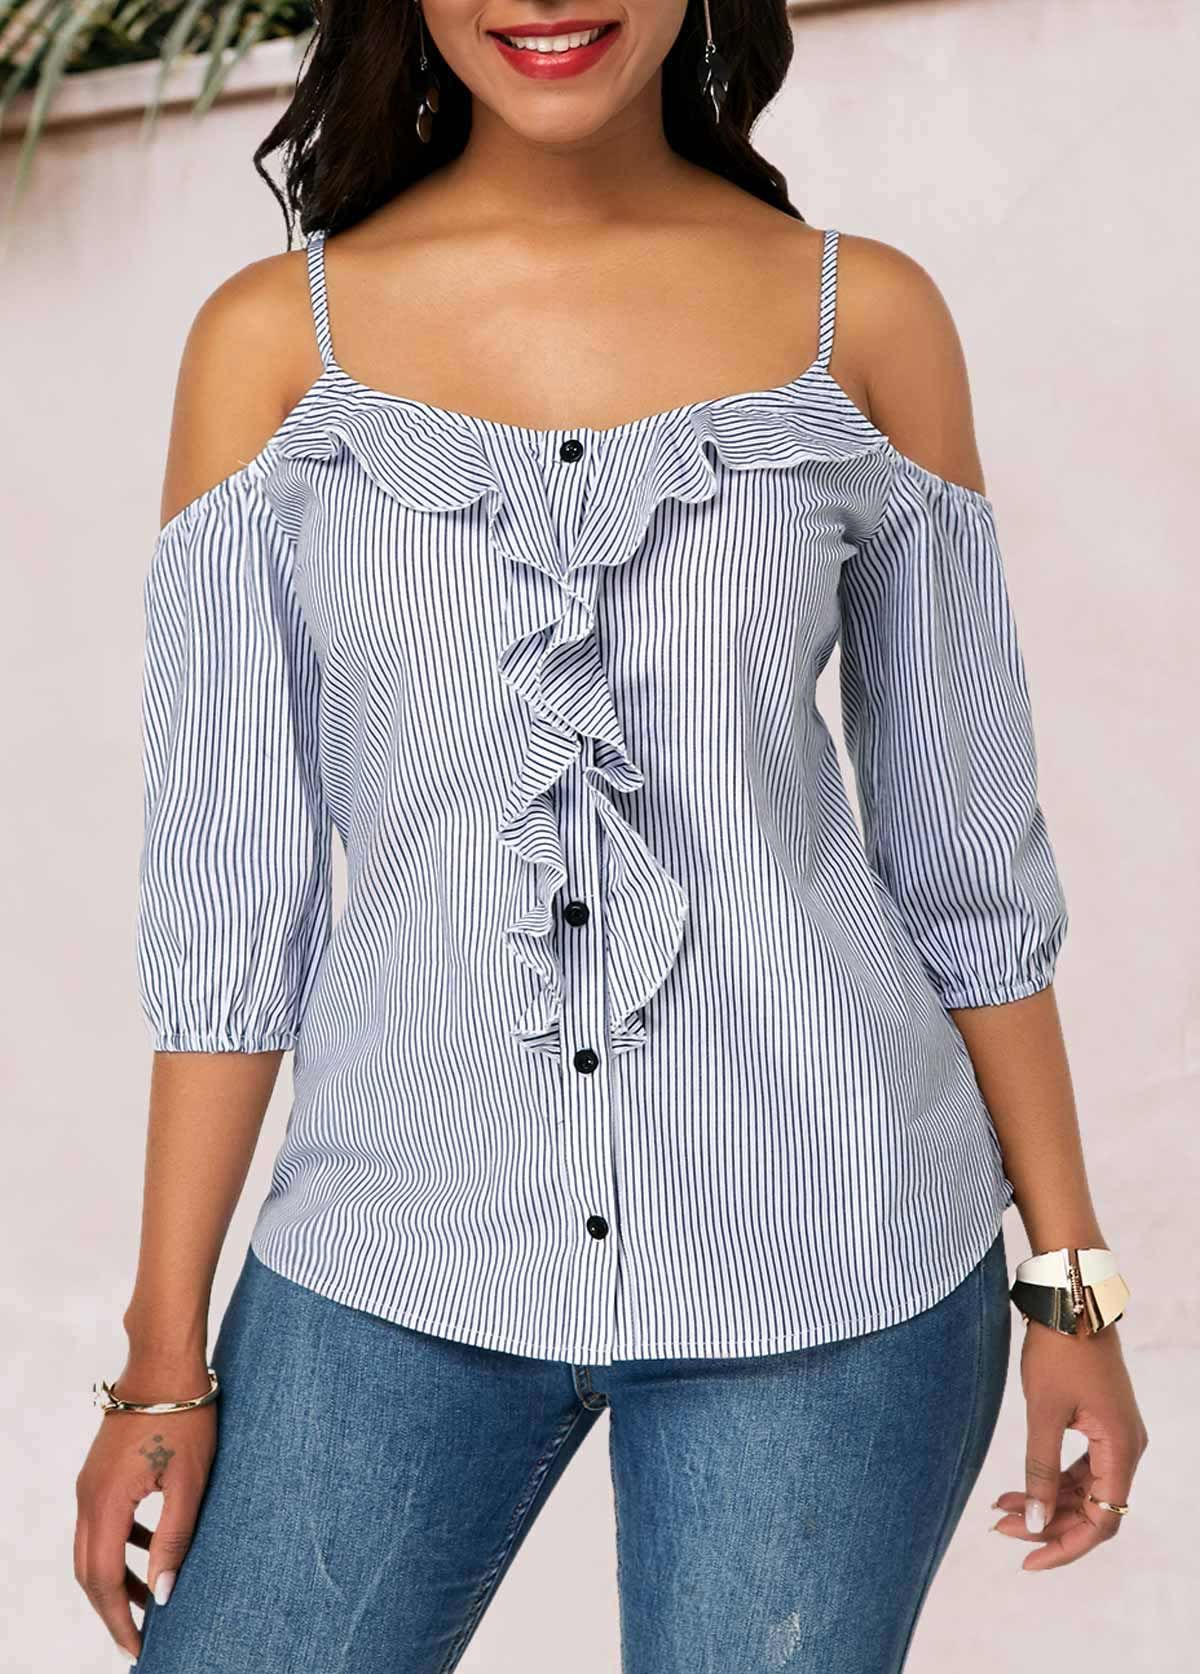 Strappy Cold Shoulder Ruffle Trim Embellished Striped Blouse Trendy Fashion Tops Trendy Tops Fashion Tops